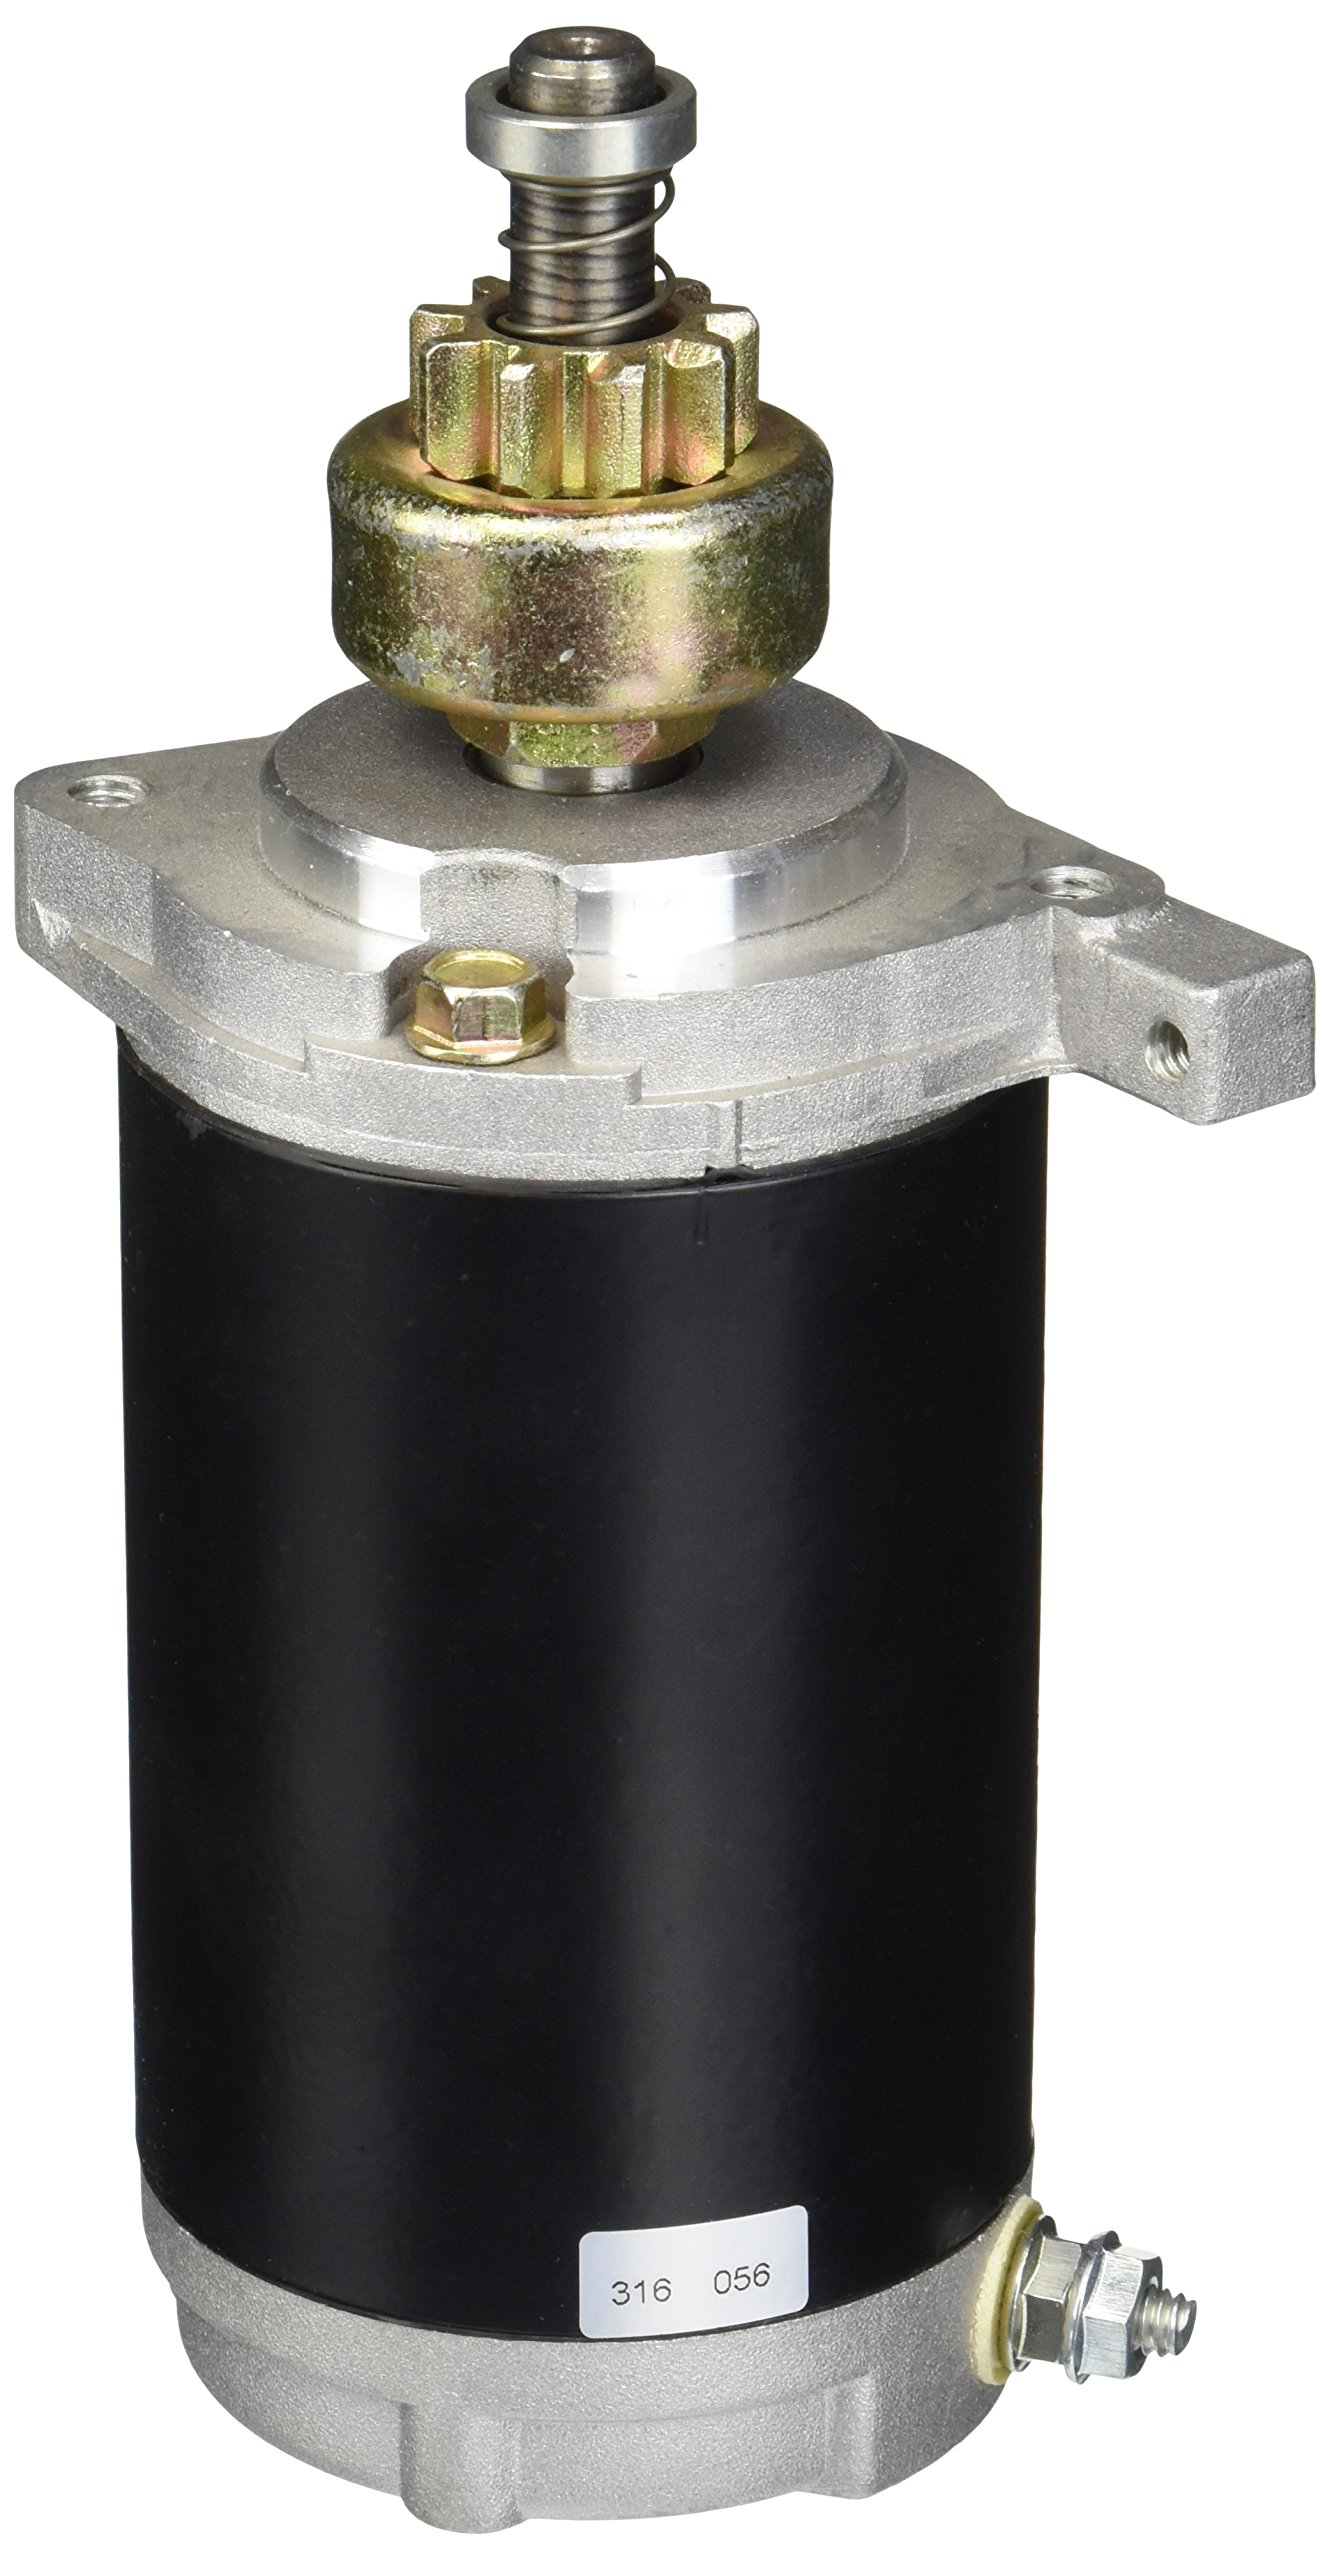 DB Electrical SAB0004 Starter Compatible With/Replacement For Mercury Outboard Marine 35 40 50 Horsepower, 35Hp 40E 40EH 40EL 40ELH, 50-30829 50-32403 5366 50-37345 50-38890A1 50-38890 50-38890A1